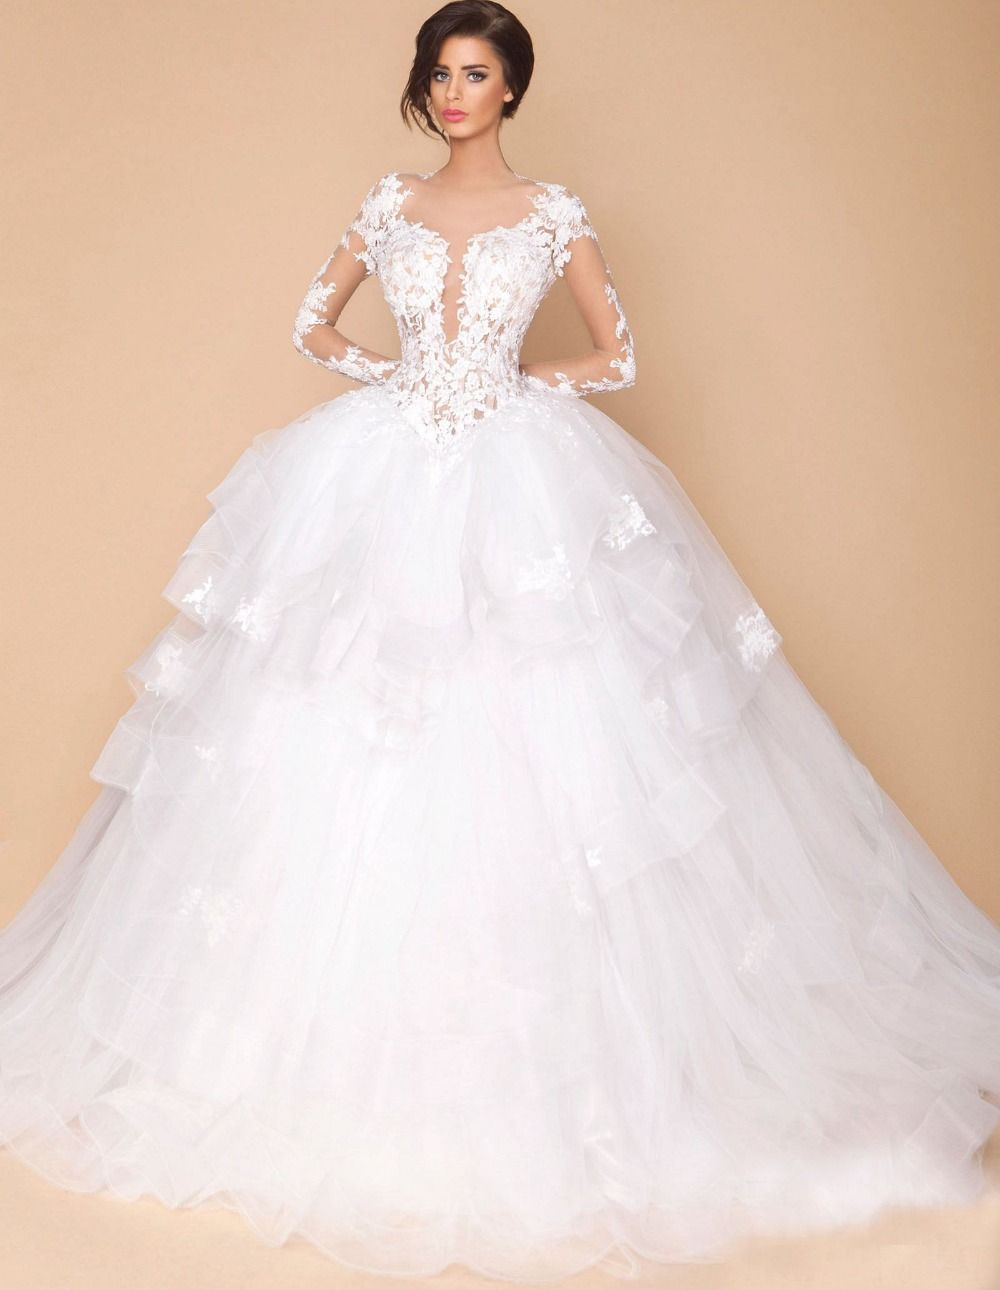 Find More Wedding Dresses Information about Lace Long Sleeve Wedding Dresses Ball Gown Scoop Neck Applique White Tulle Sheer Wedding Gowns Bride Dresses Casamento ,High Quality dress kitten,China gown shawl Suppliers, Cheap dress veil from xlbutterfly on Aliexpress.com